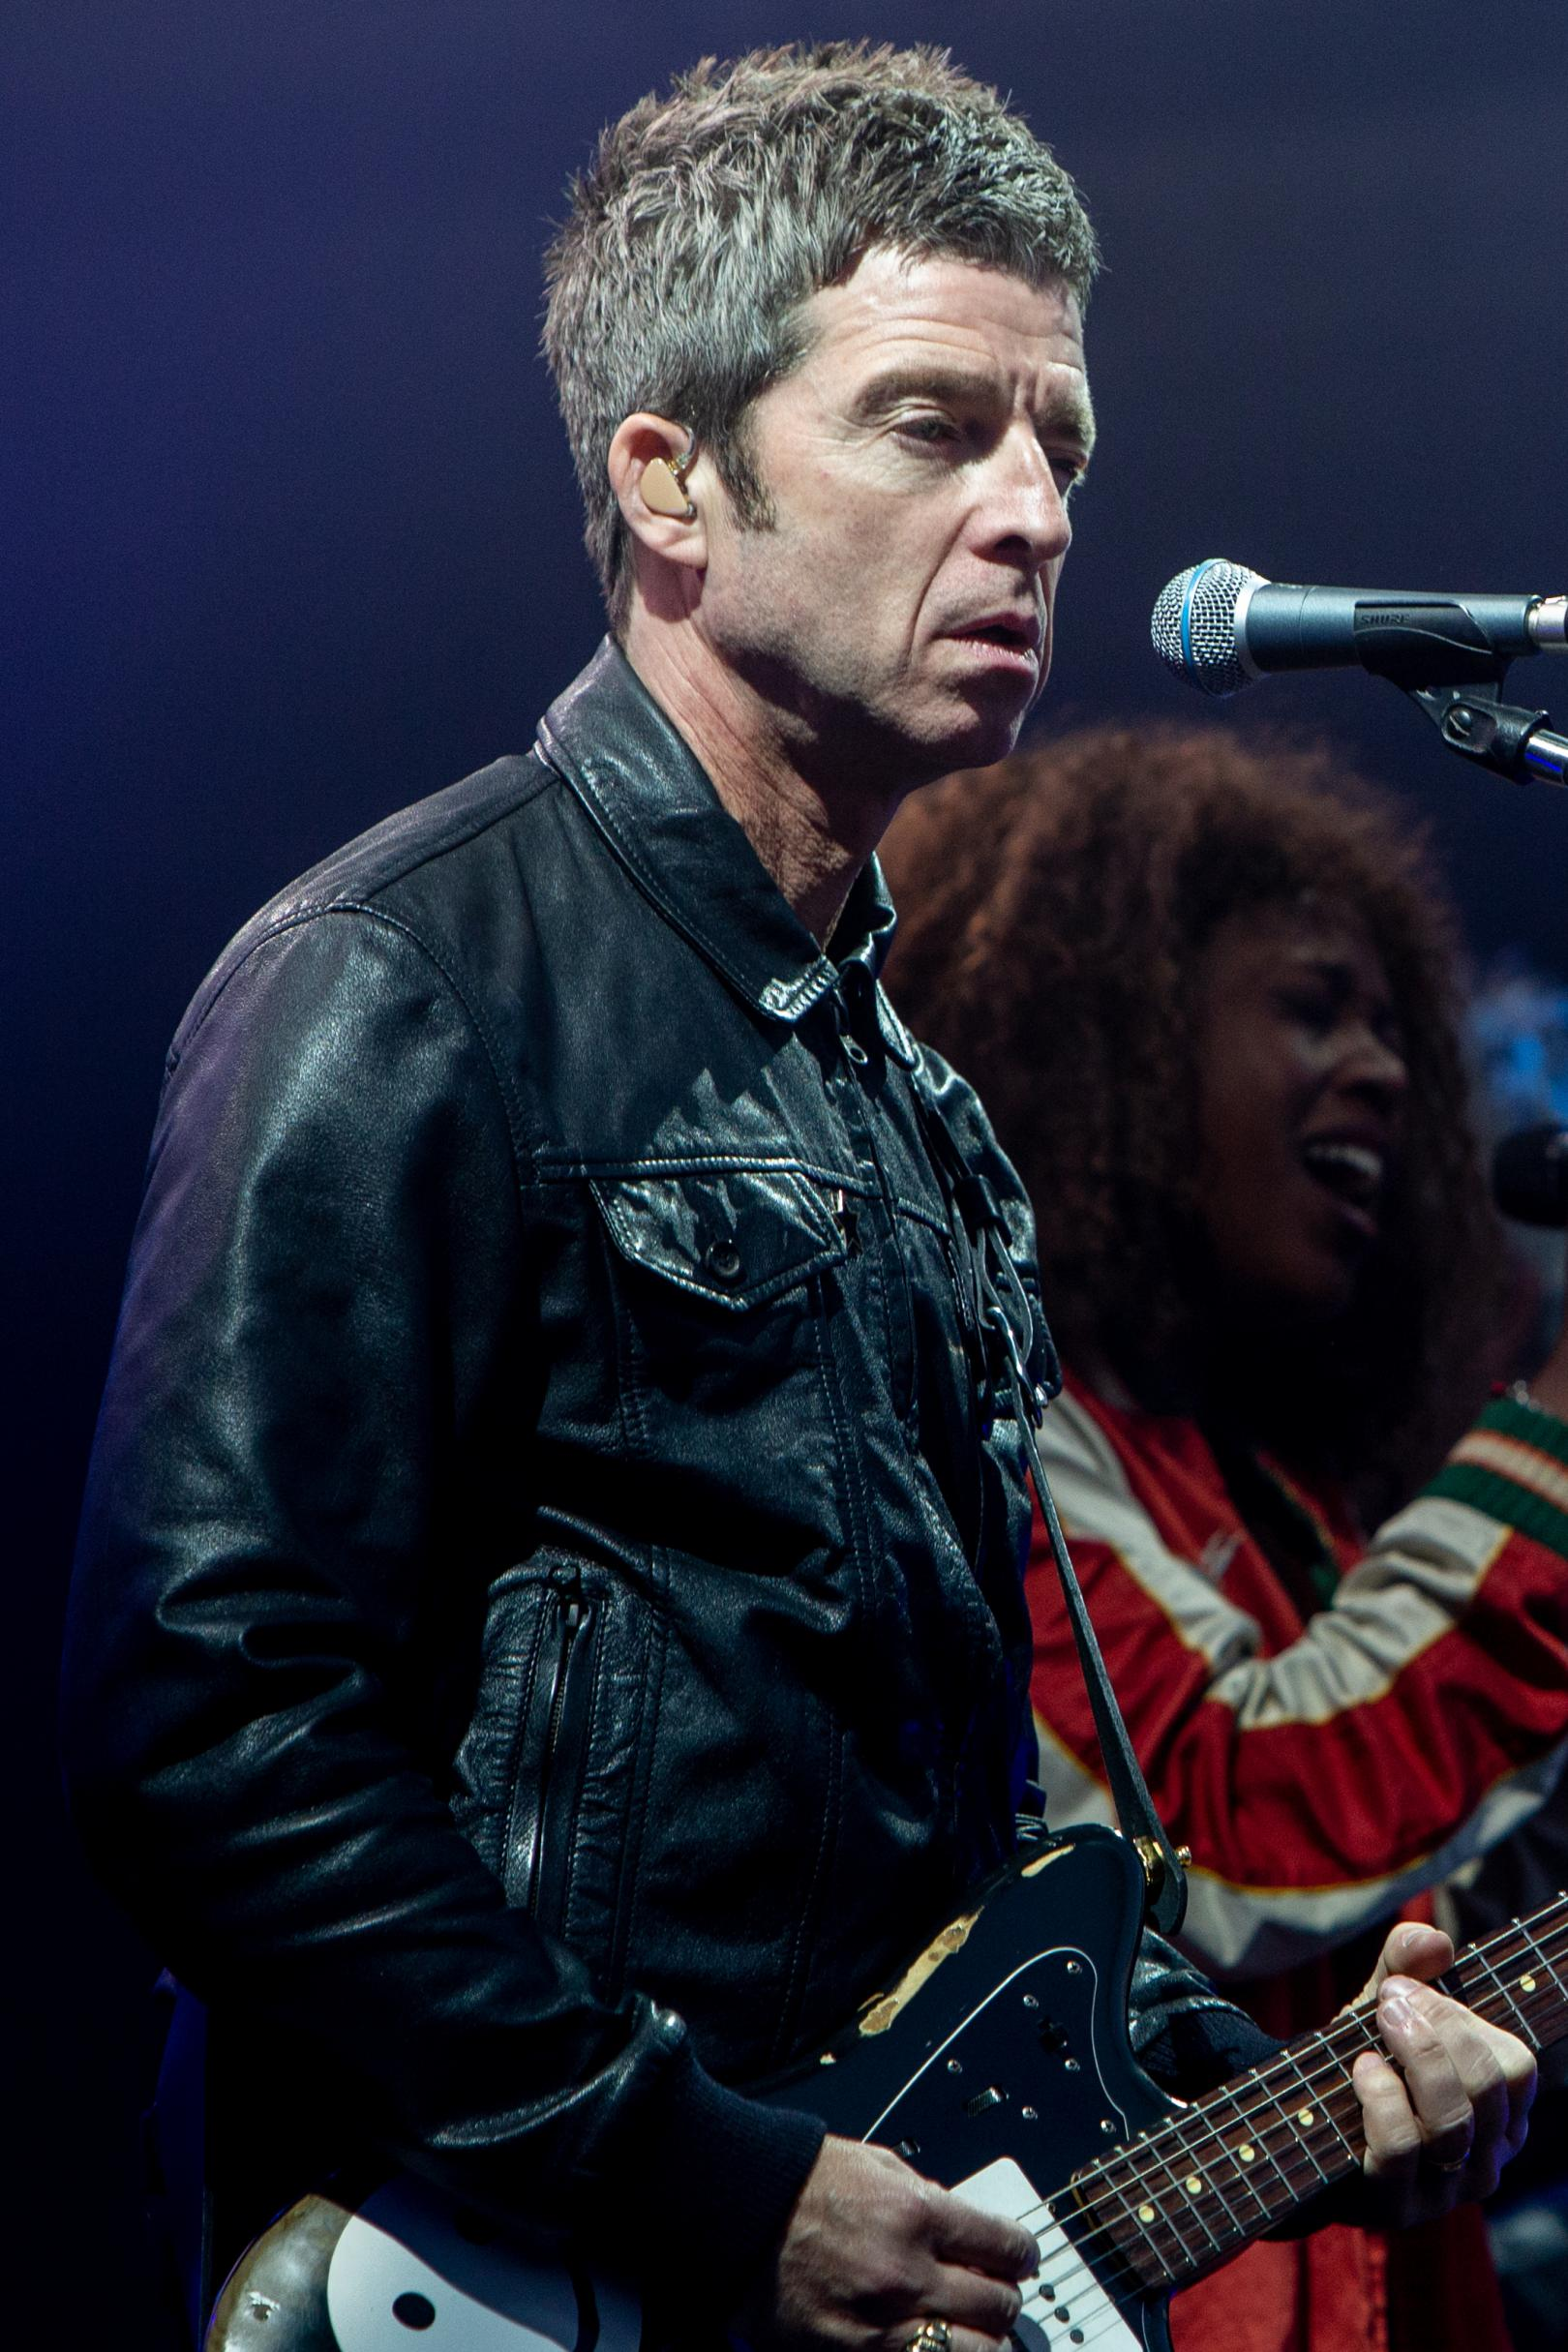 Noel Gallagher Concert Photography